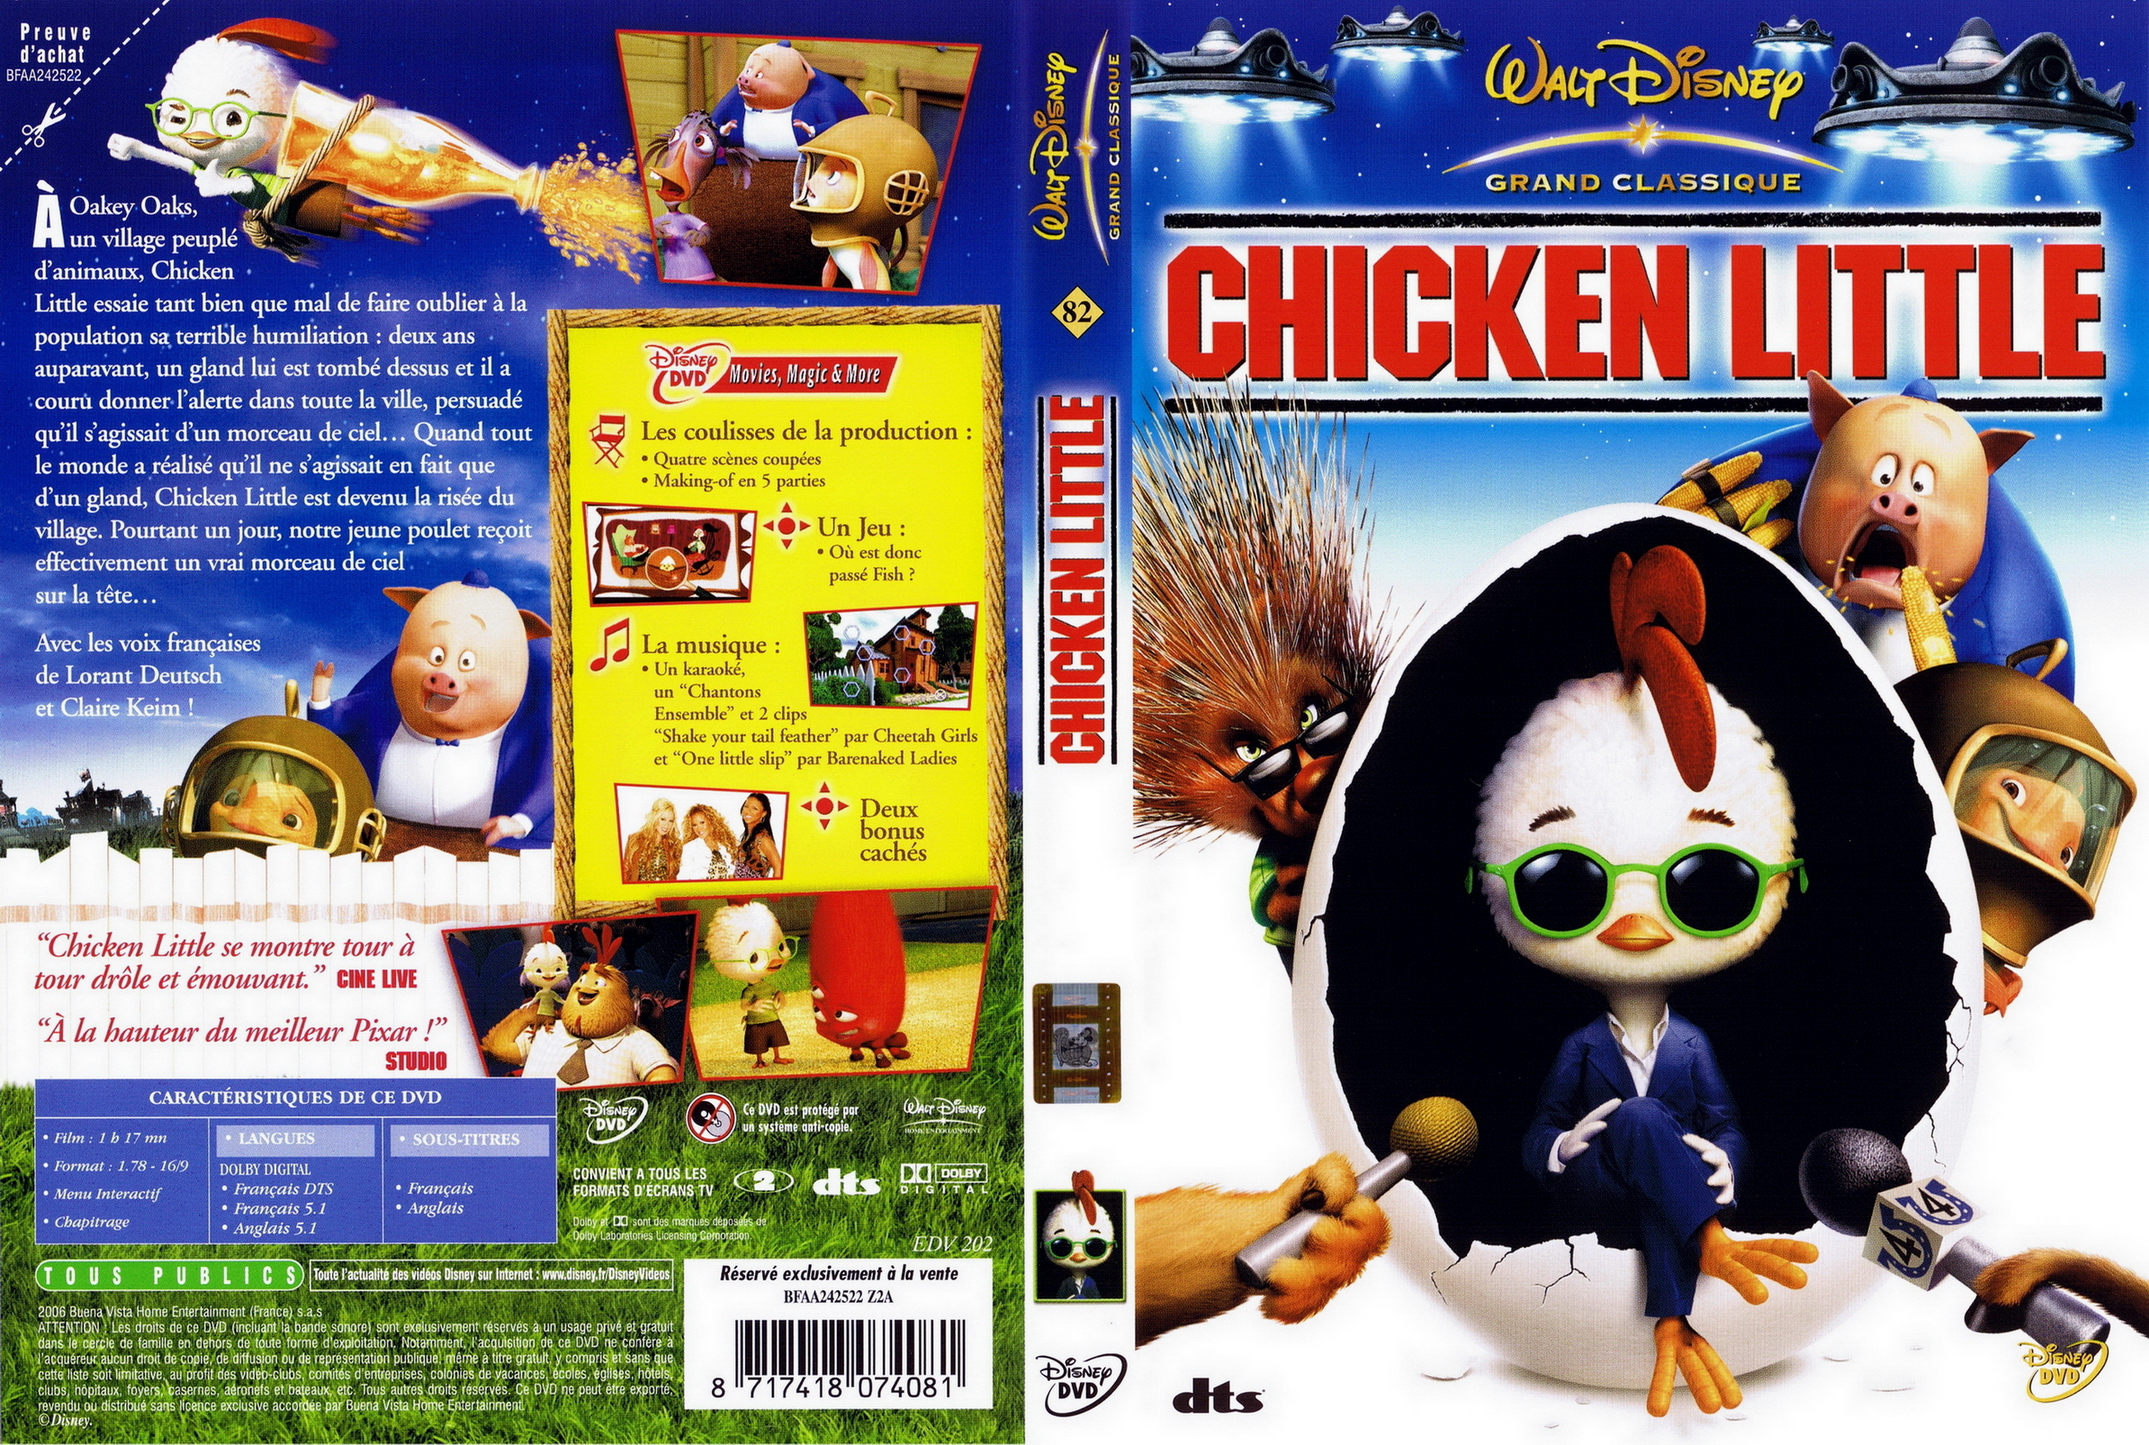 Chicken Little 2006 Dvd Pictures to Pin on Pinterest ...